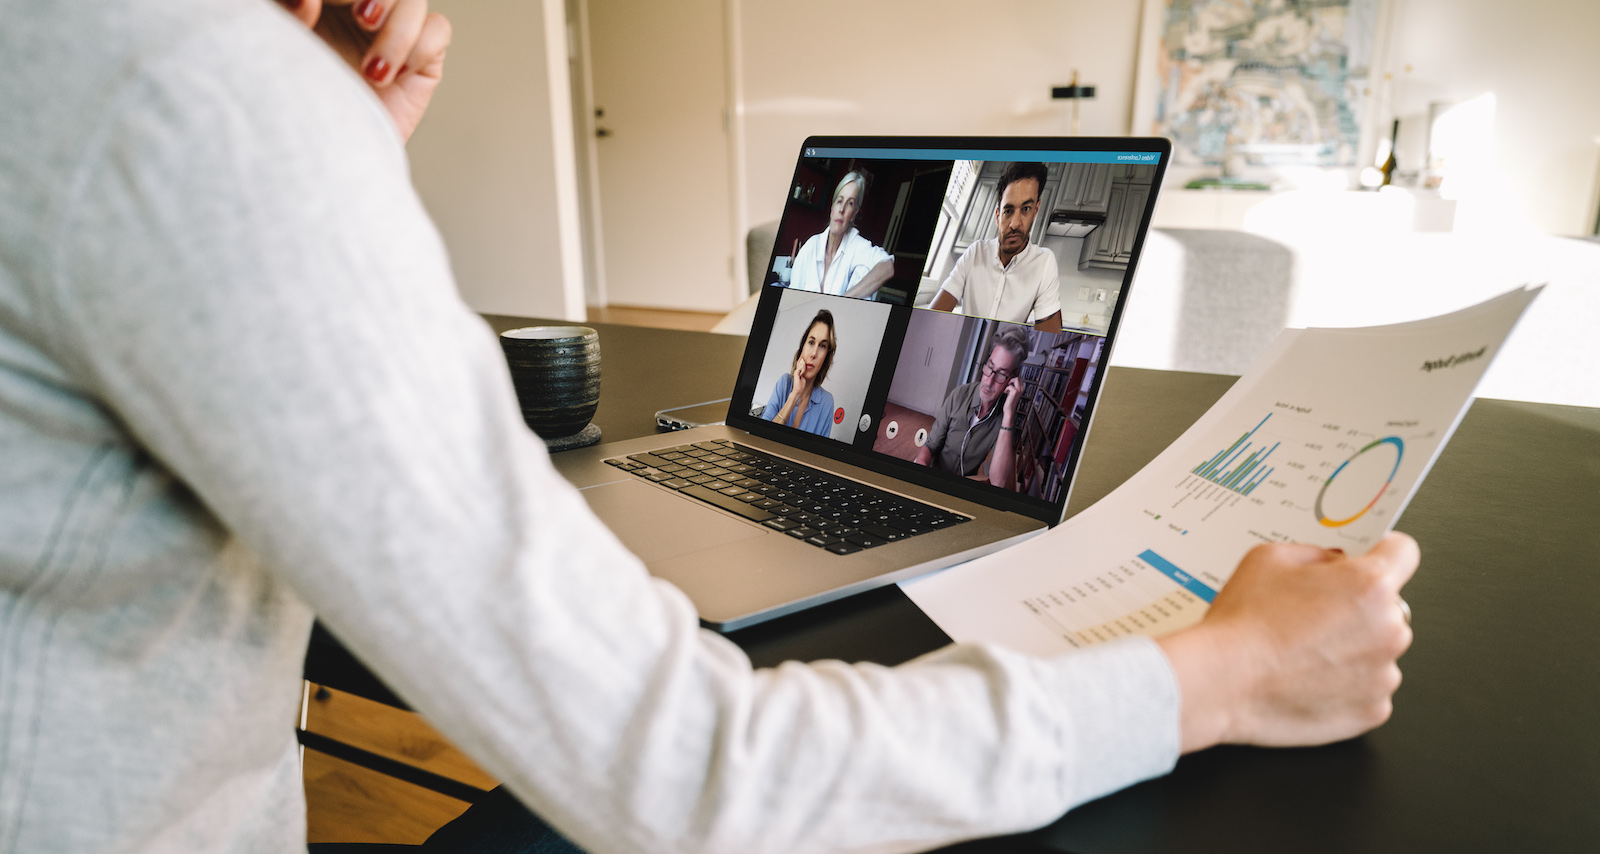 Remote Management: The What, Why and How to successfully manage a remote team